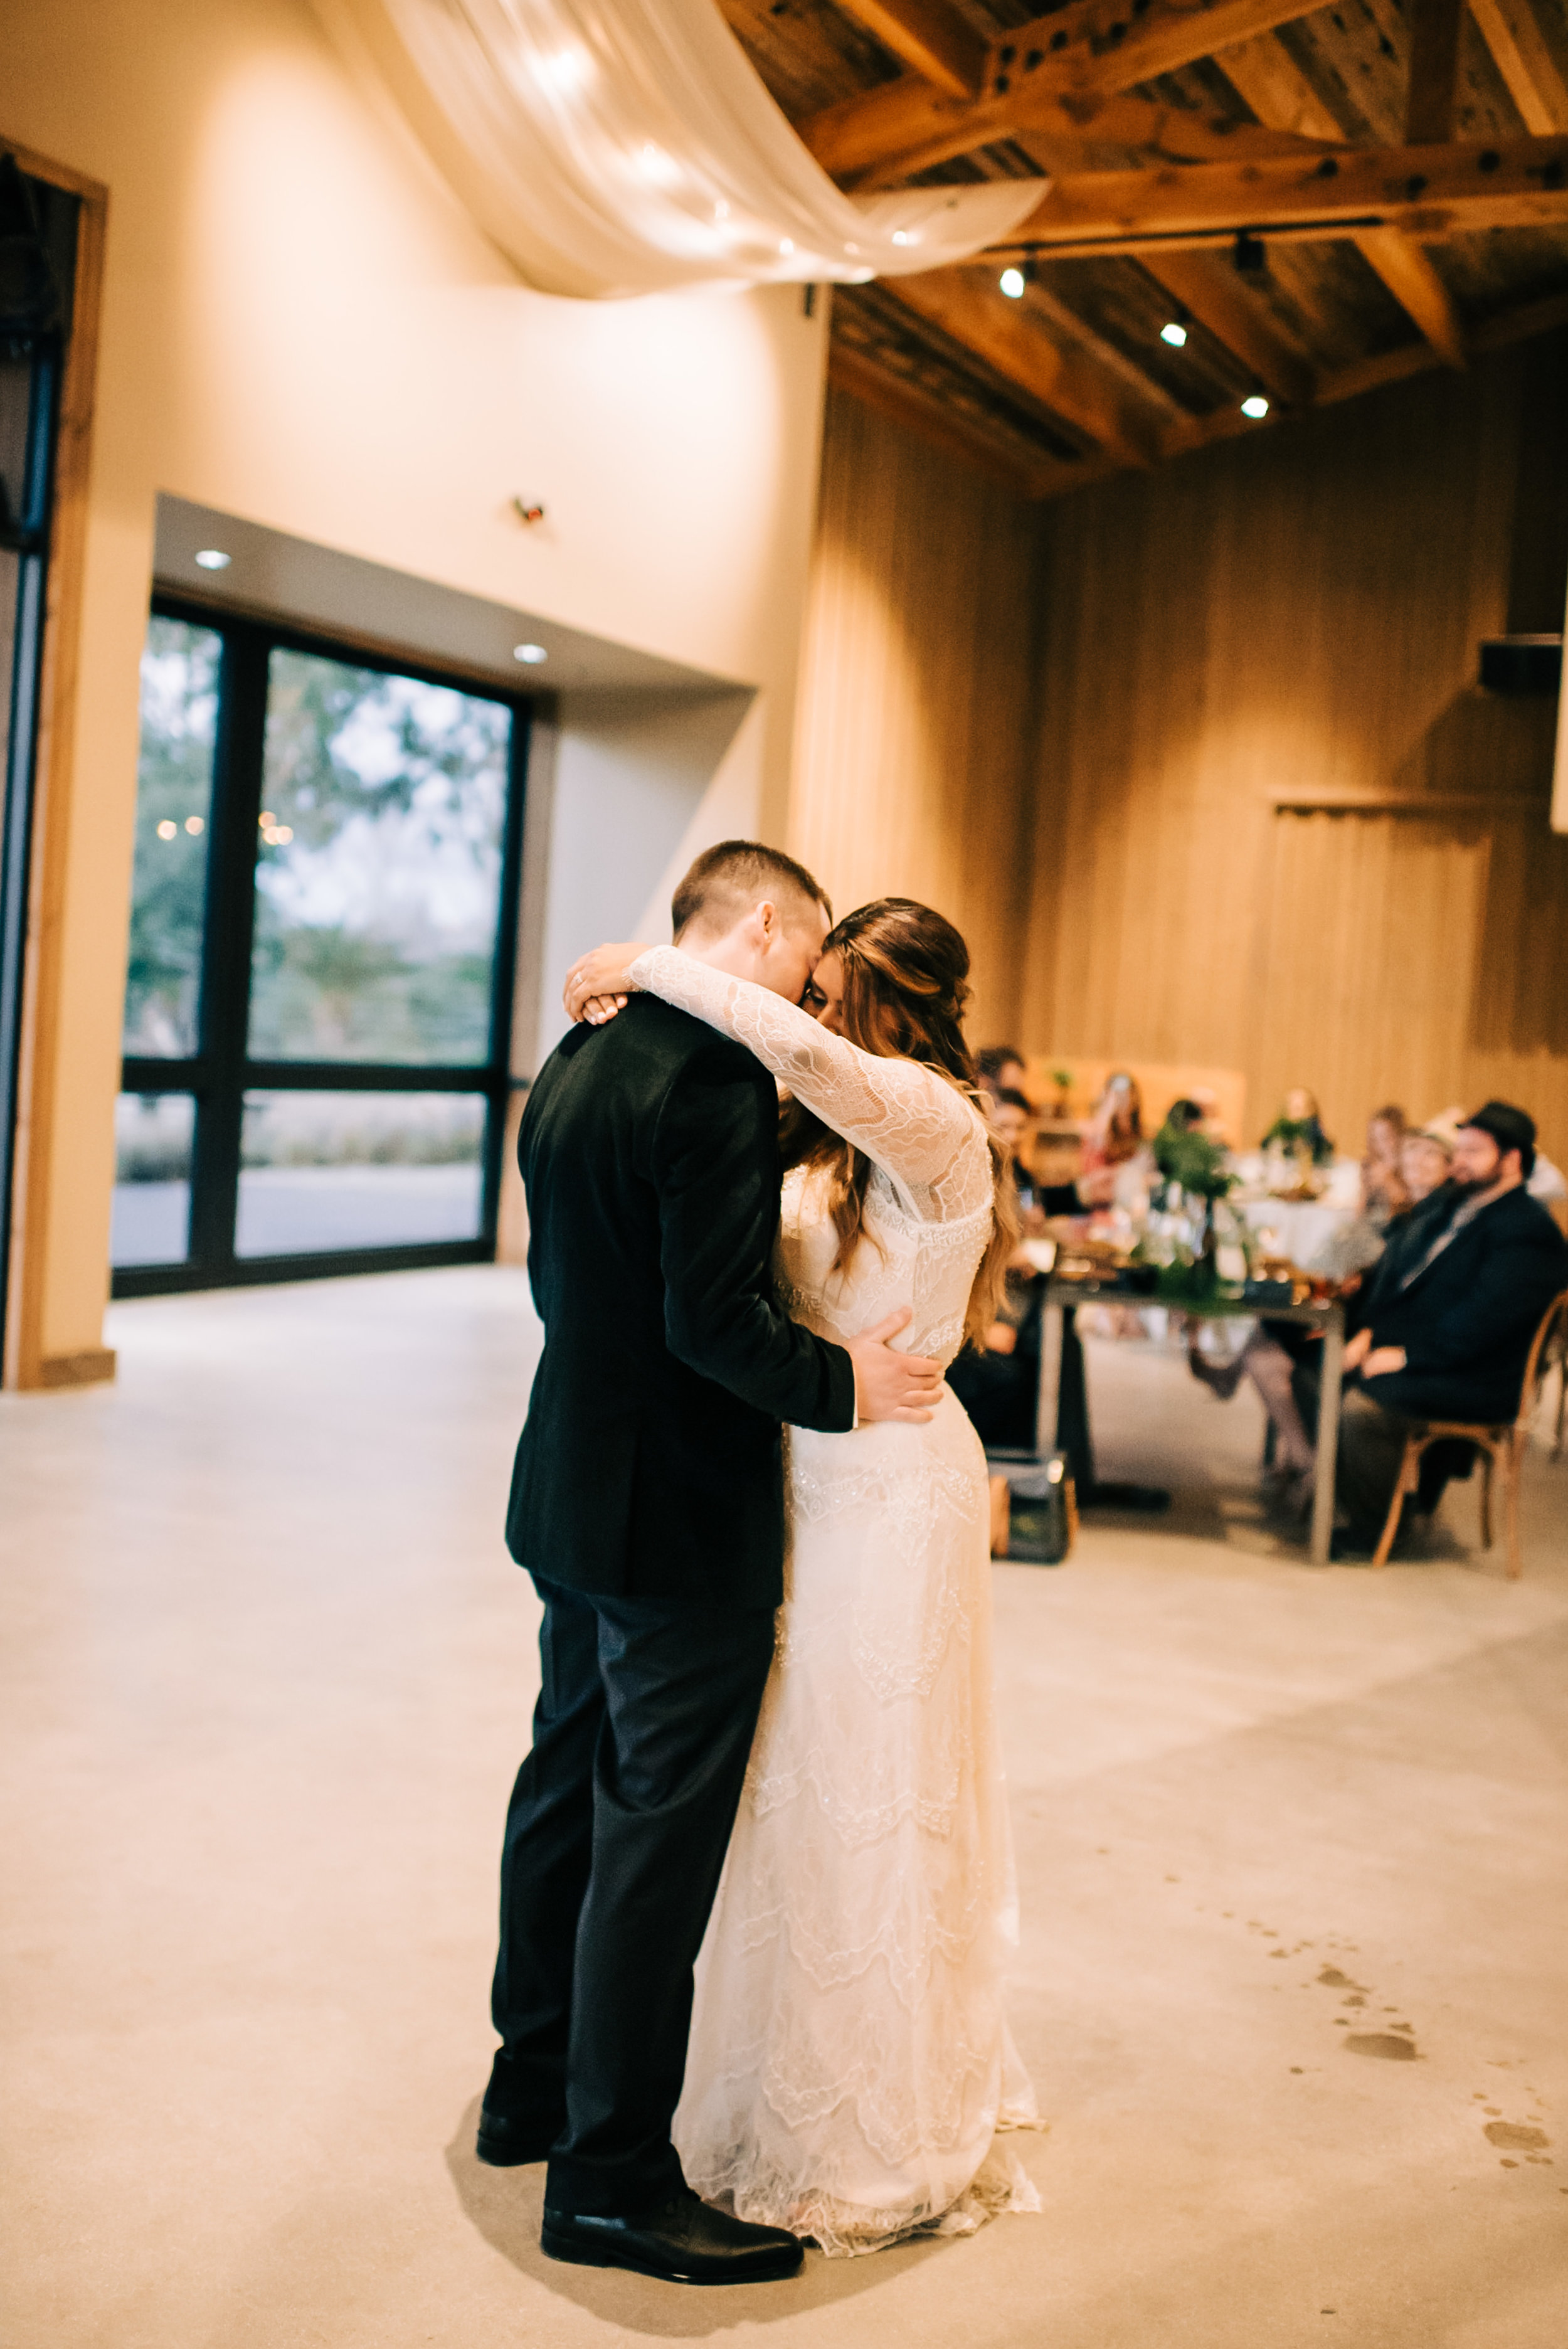 bay area nontraditional wedding photographer southern california boho wedding love light magic san francisco oakland northern california-1072.jpg